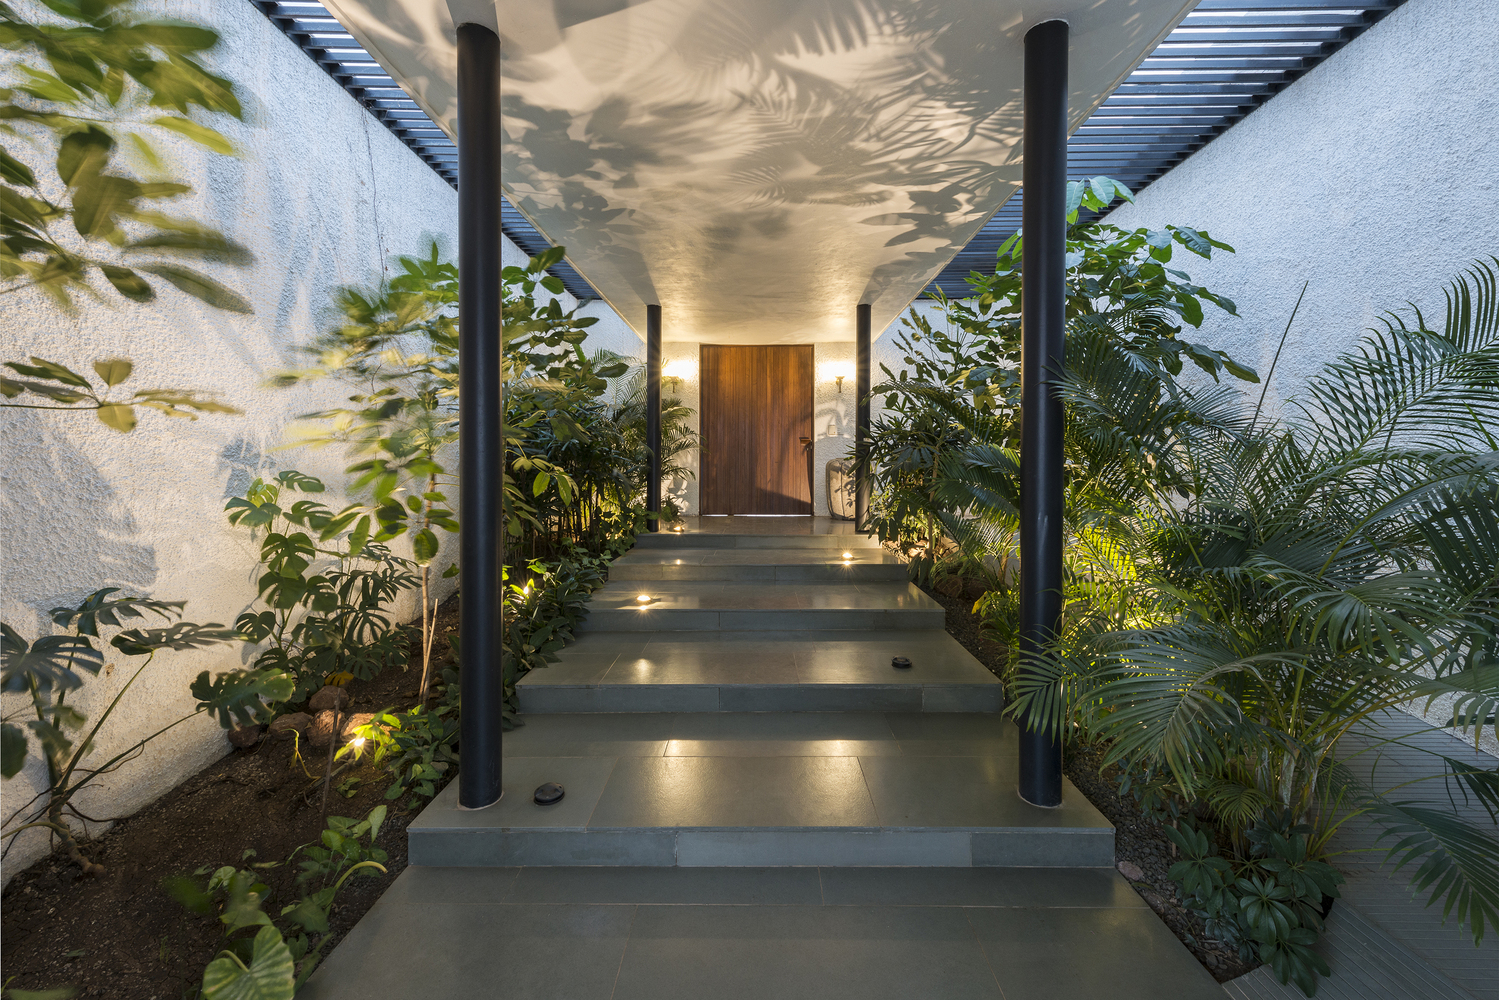 Home exterior at night. Light hits the plants whose reflection decorates the wall.